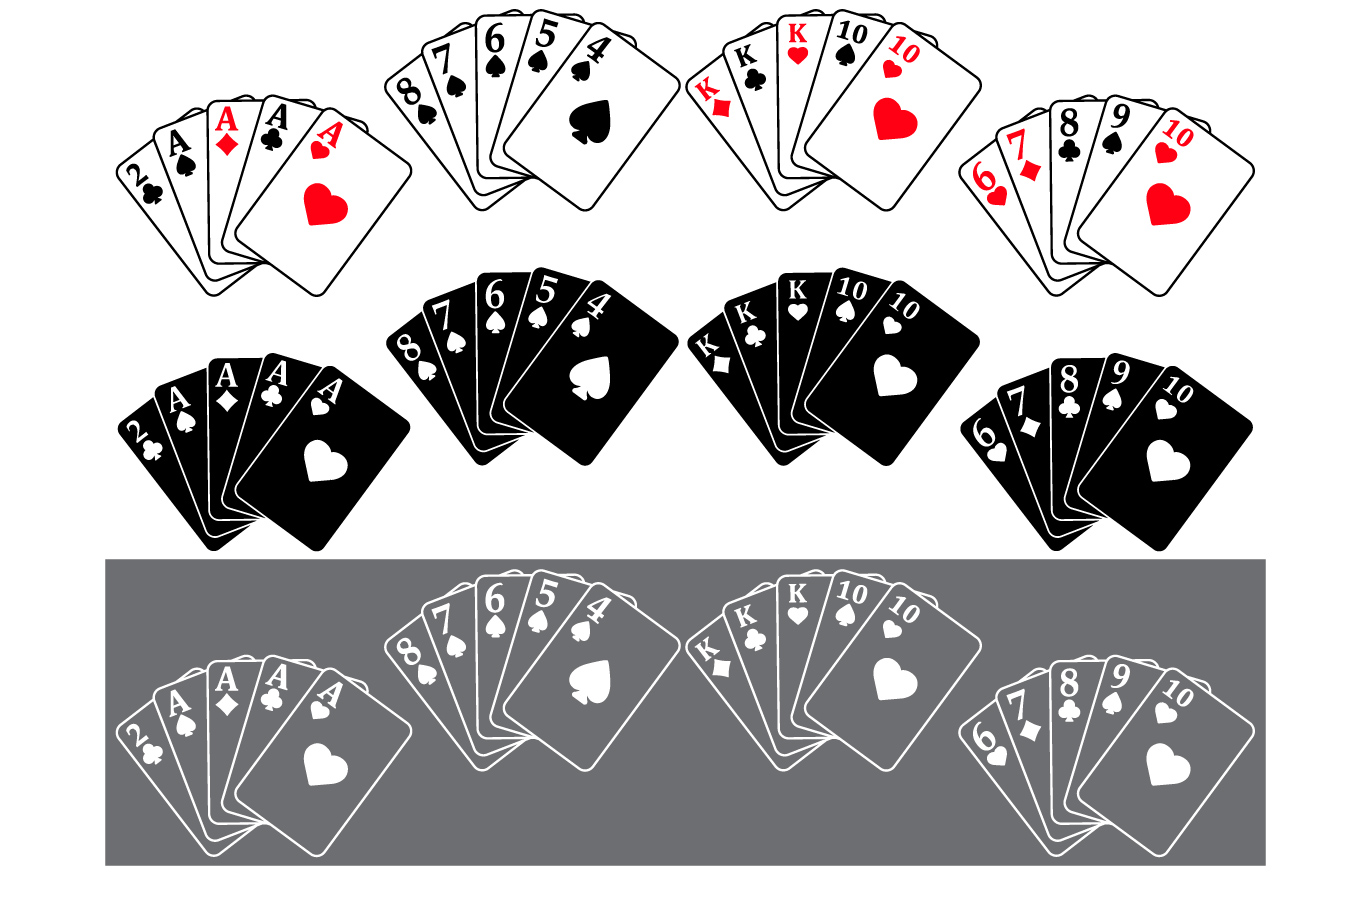 Poker Full House Straight Flush Four of a Kind Straight 742S example image 2